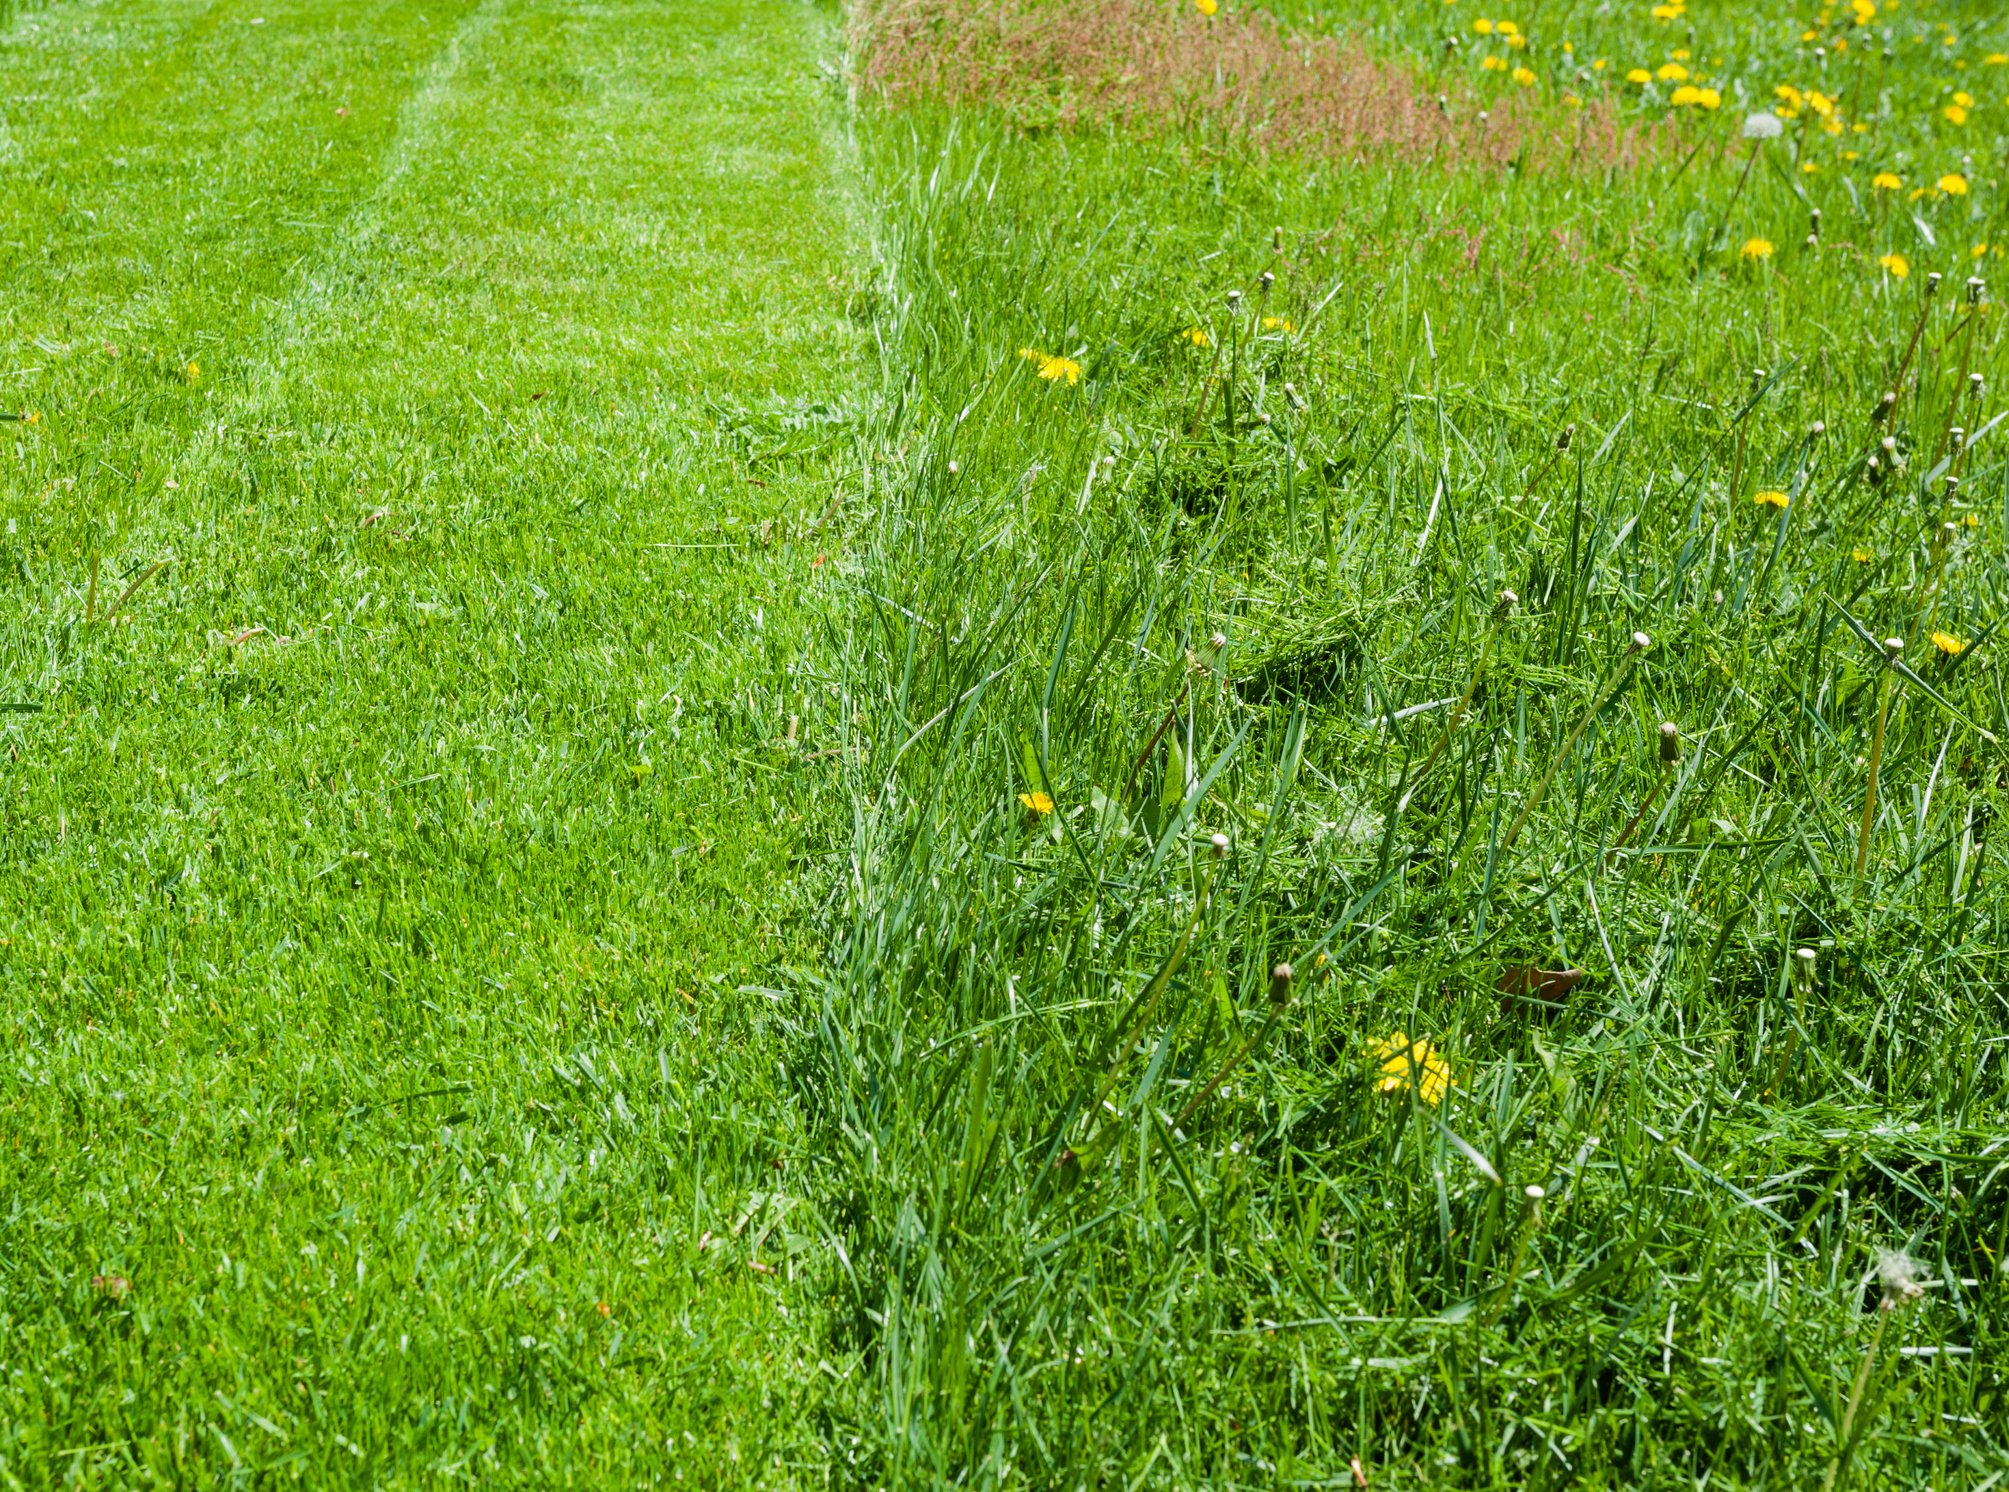 Fiesta Weed Control: Does It Work For Your Lawn? - Featured Image